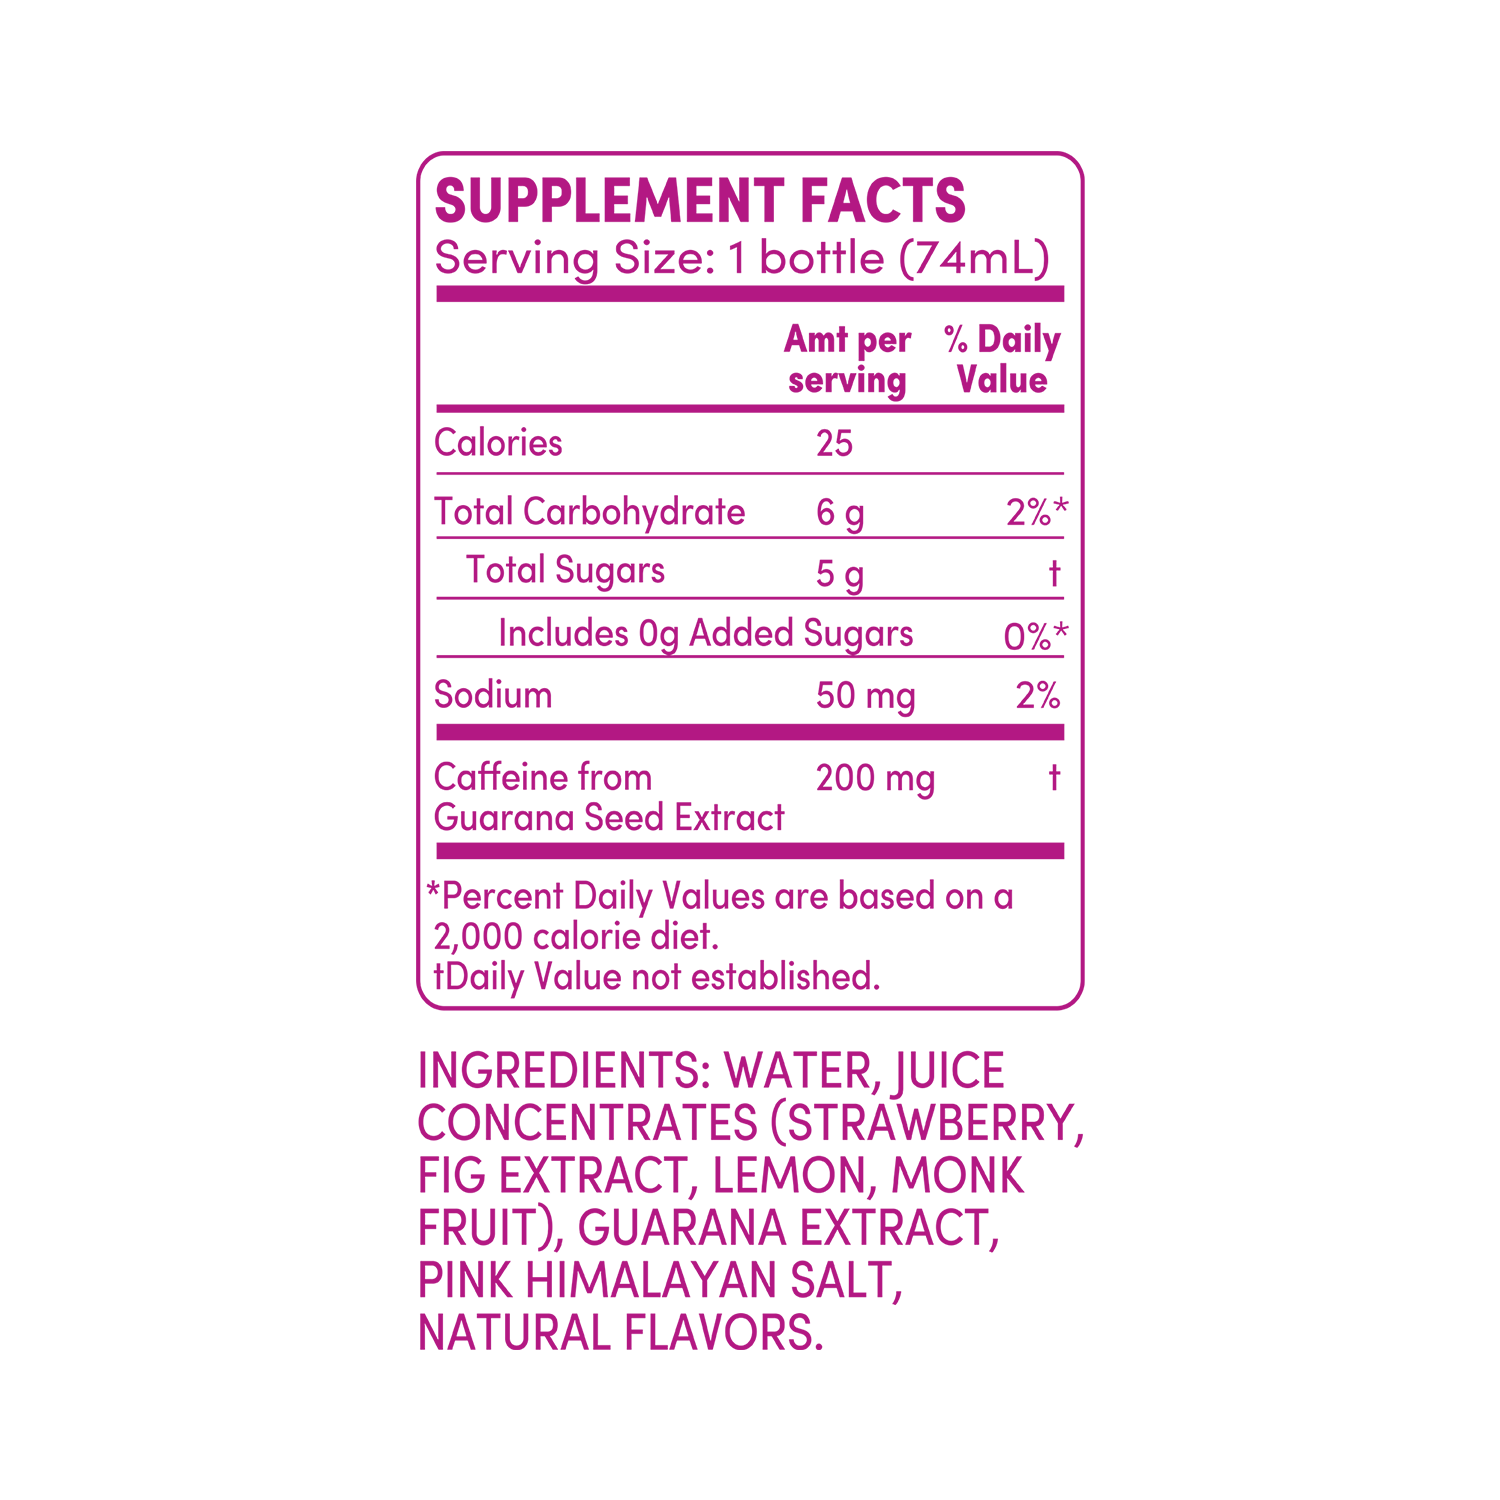 GO BIG strawberry fig supplement facts